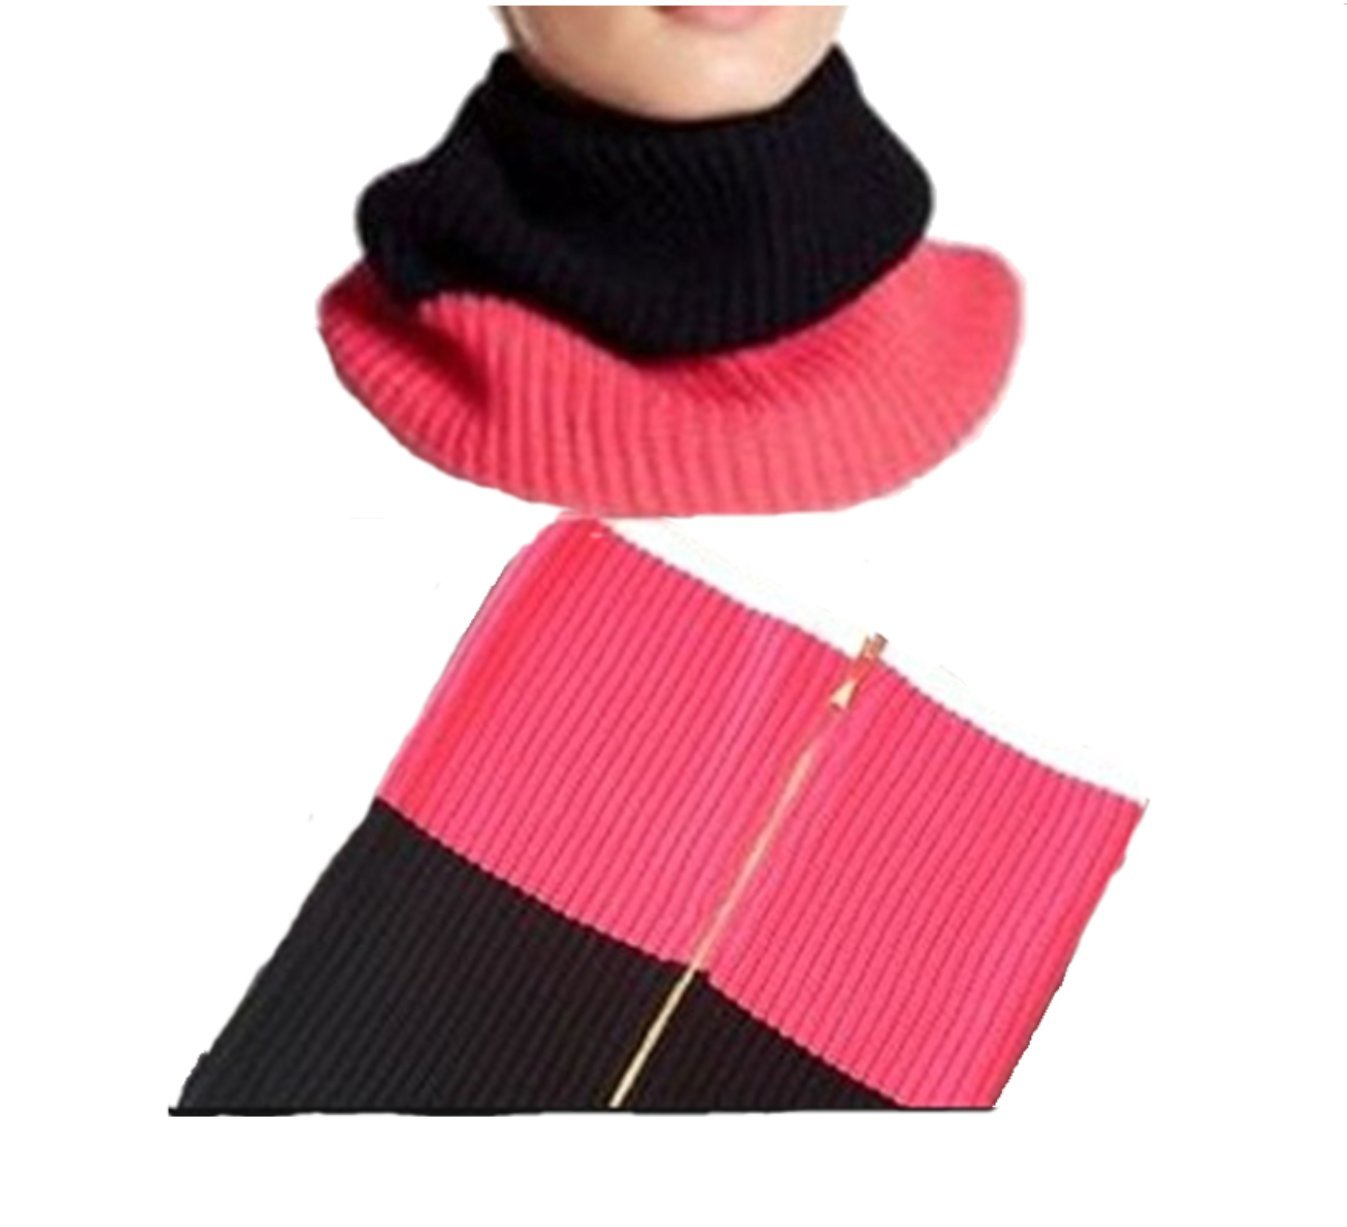 Kate Spade Zip Up Neck Warmer, Sweetheart Pink/Black